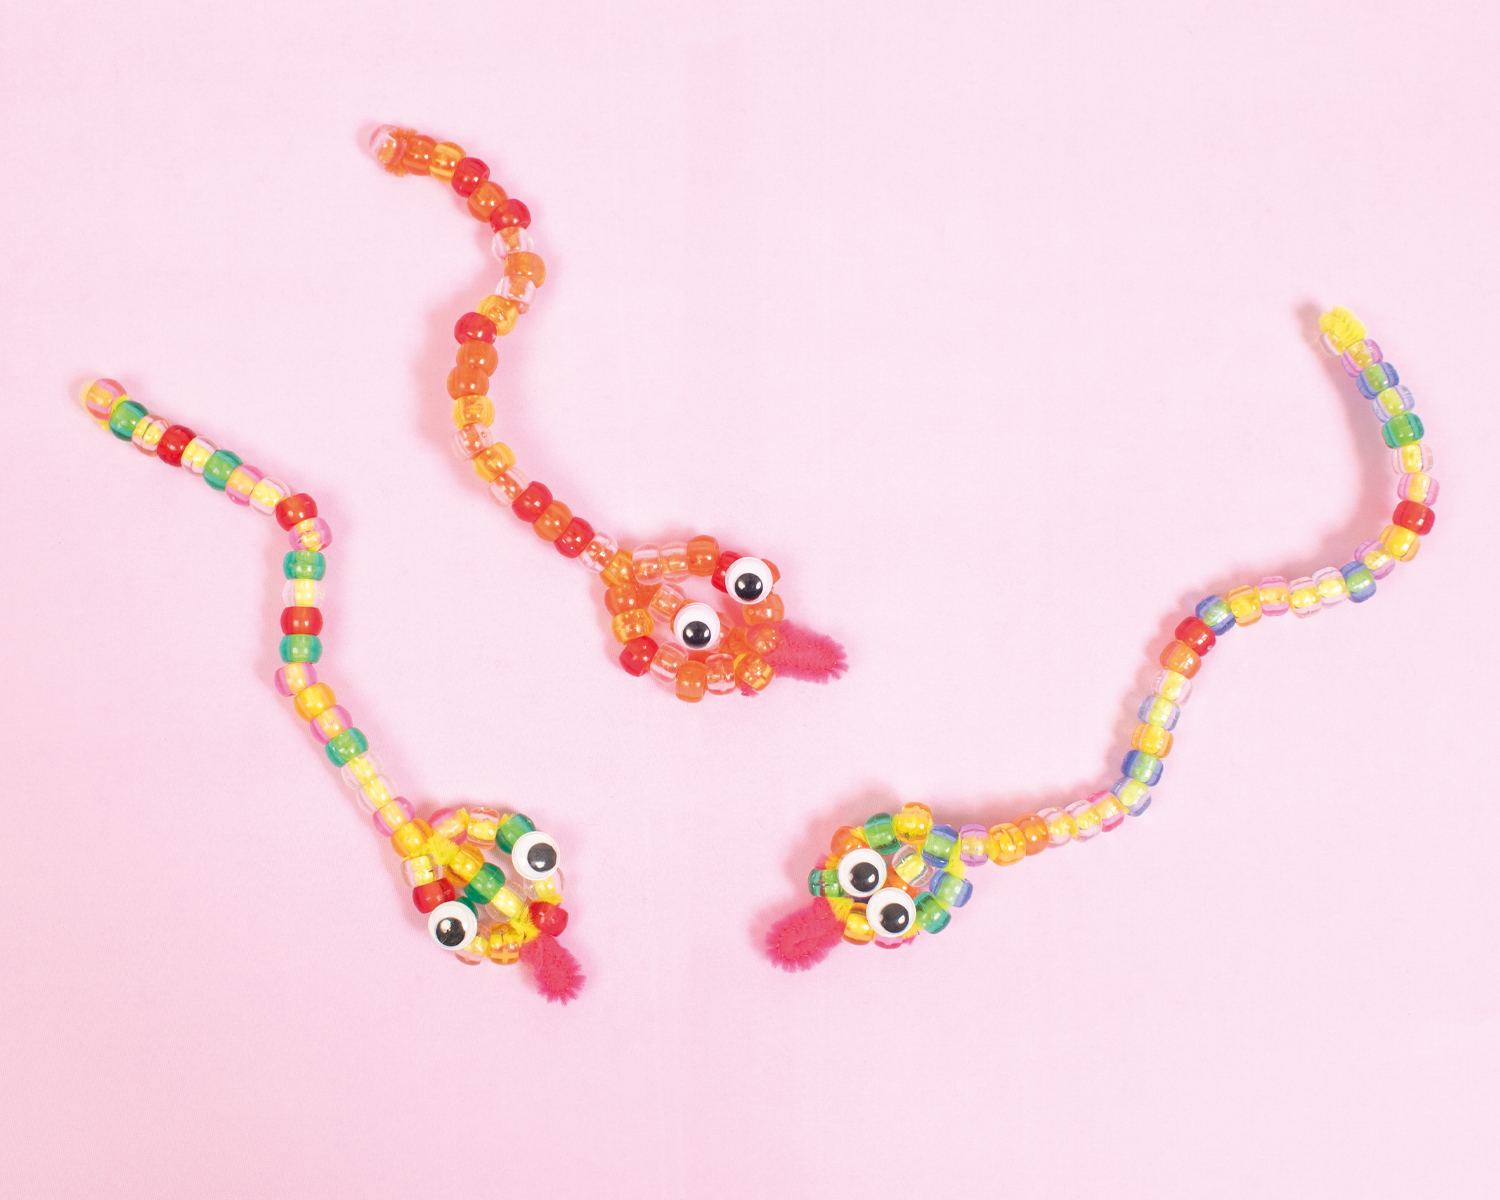 Bendable beaded snakes